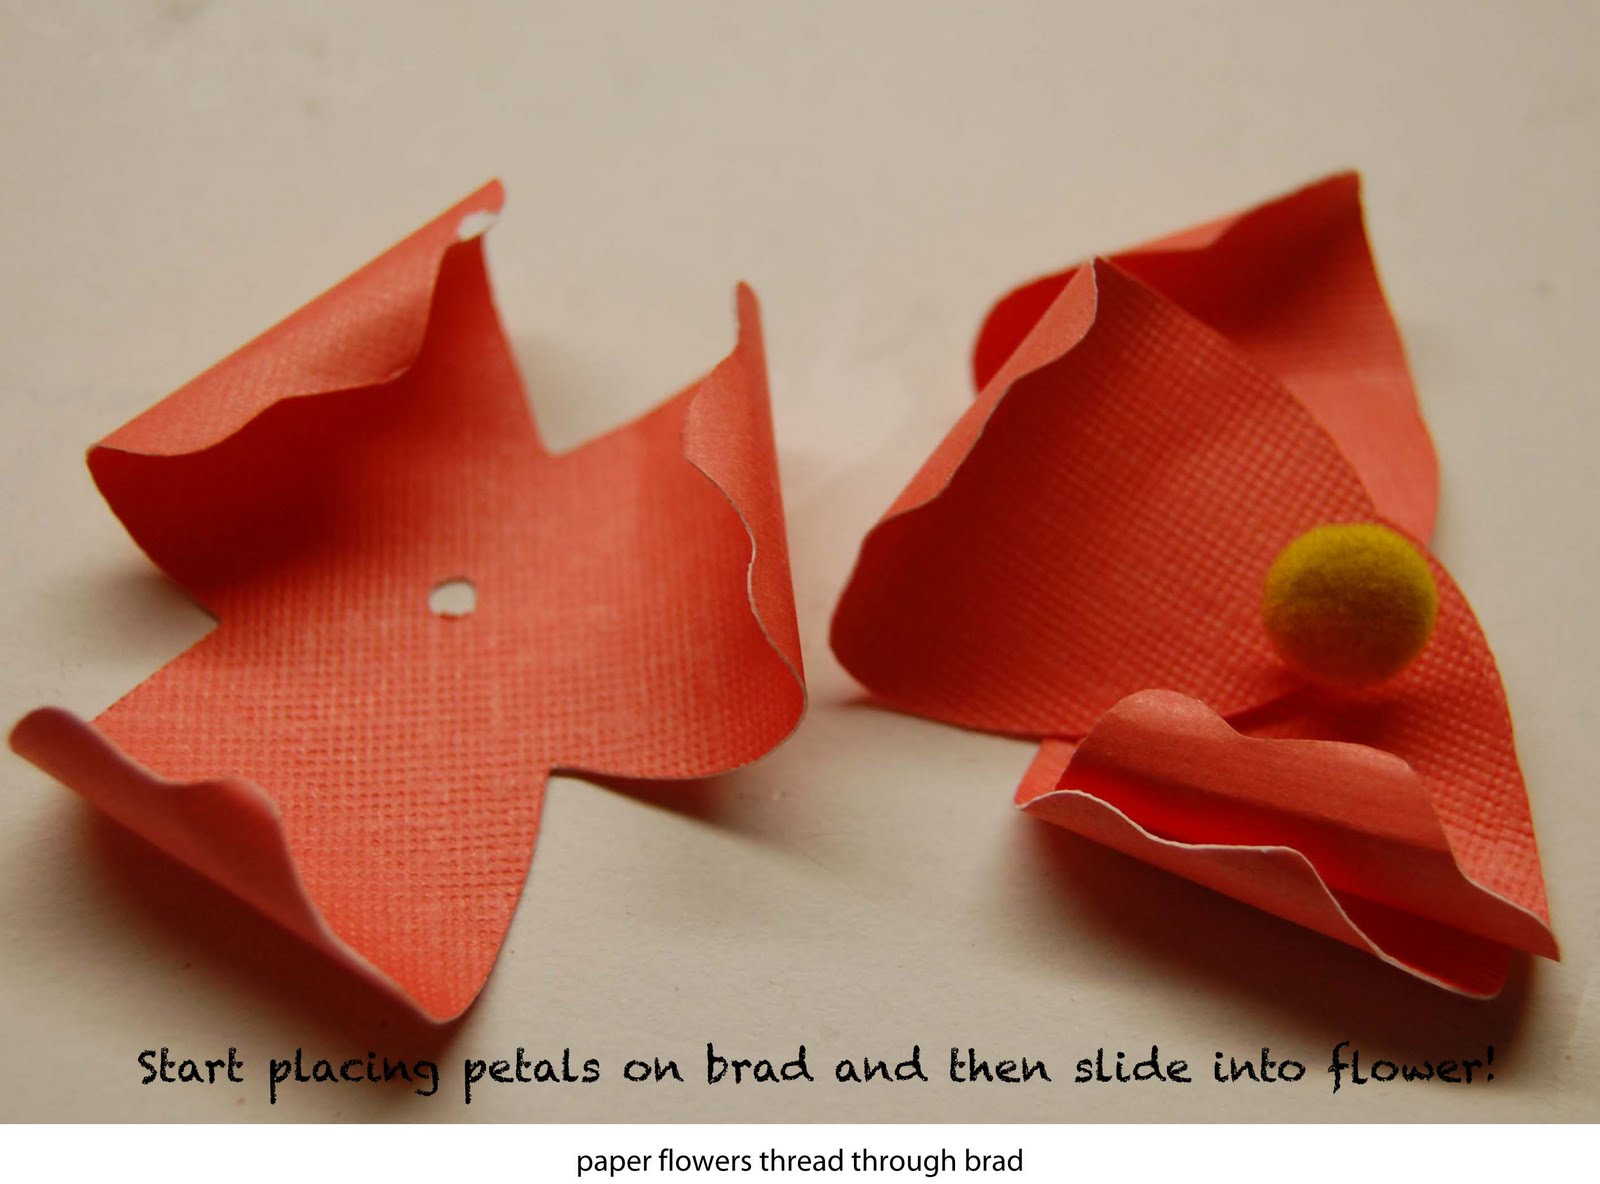 Layered Flower SVG http://pigtailspapertrails.blogspot.com/2010/04/great-new-paper-flower-tutorial-and.html